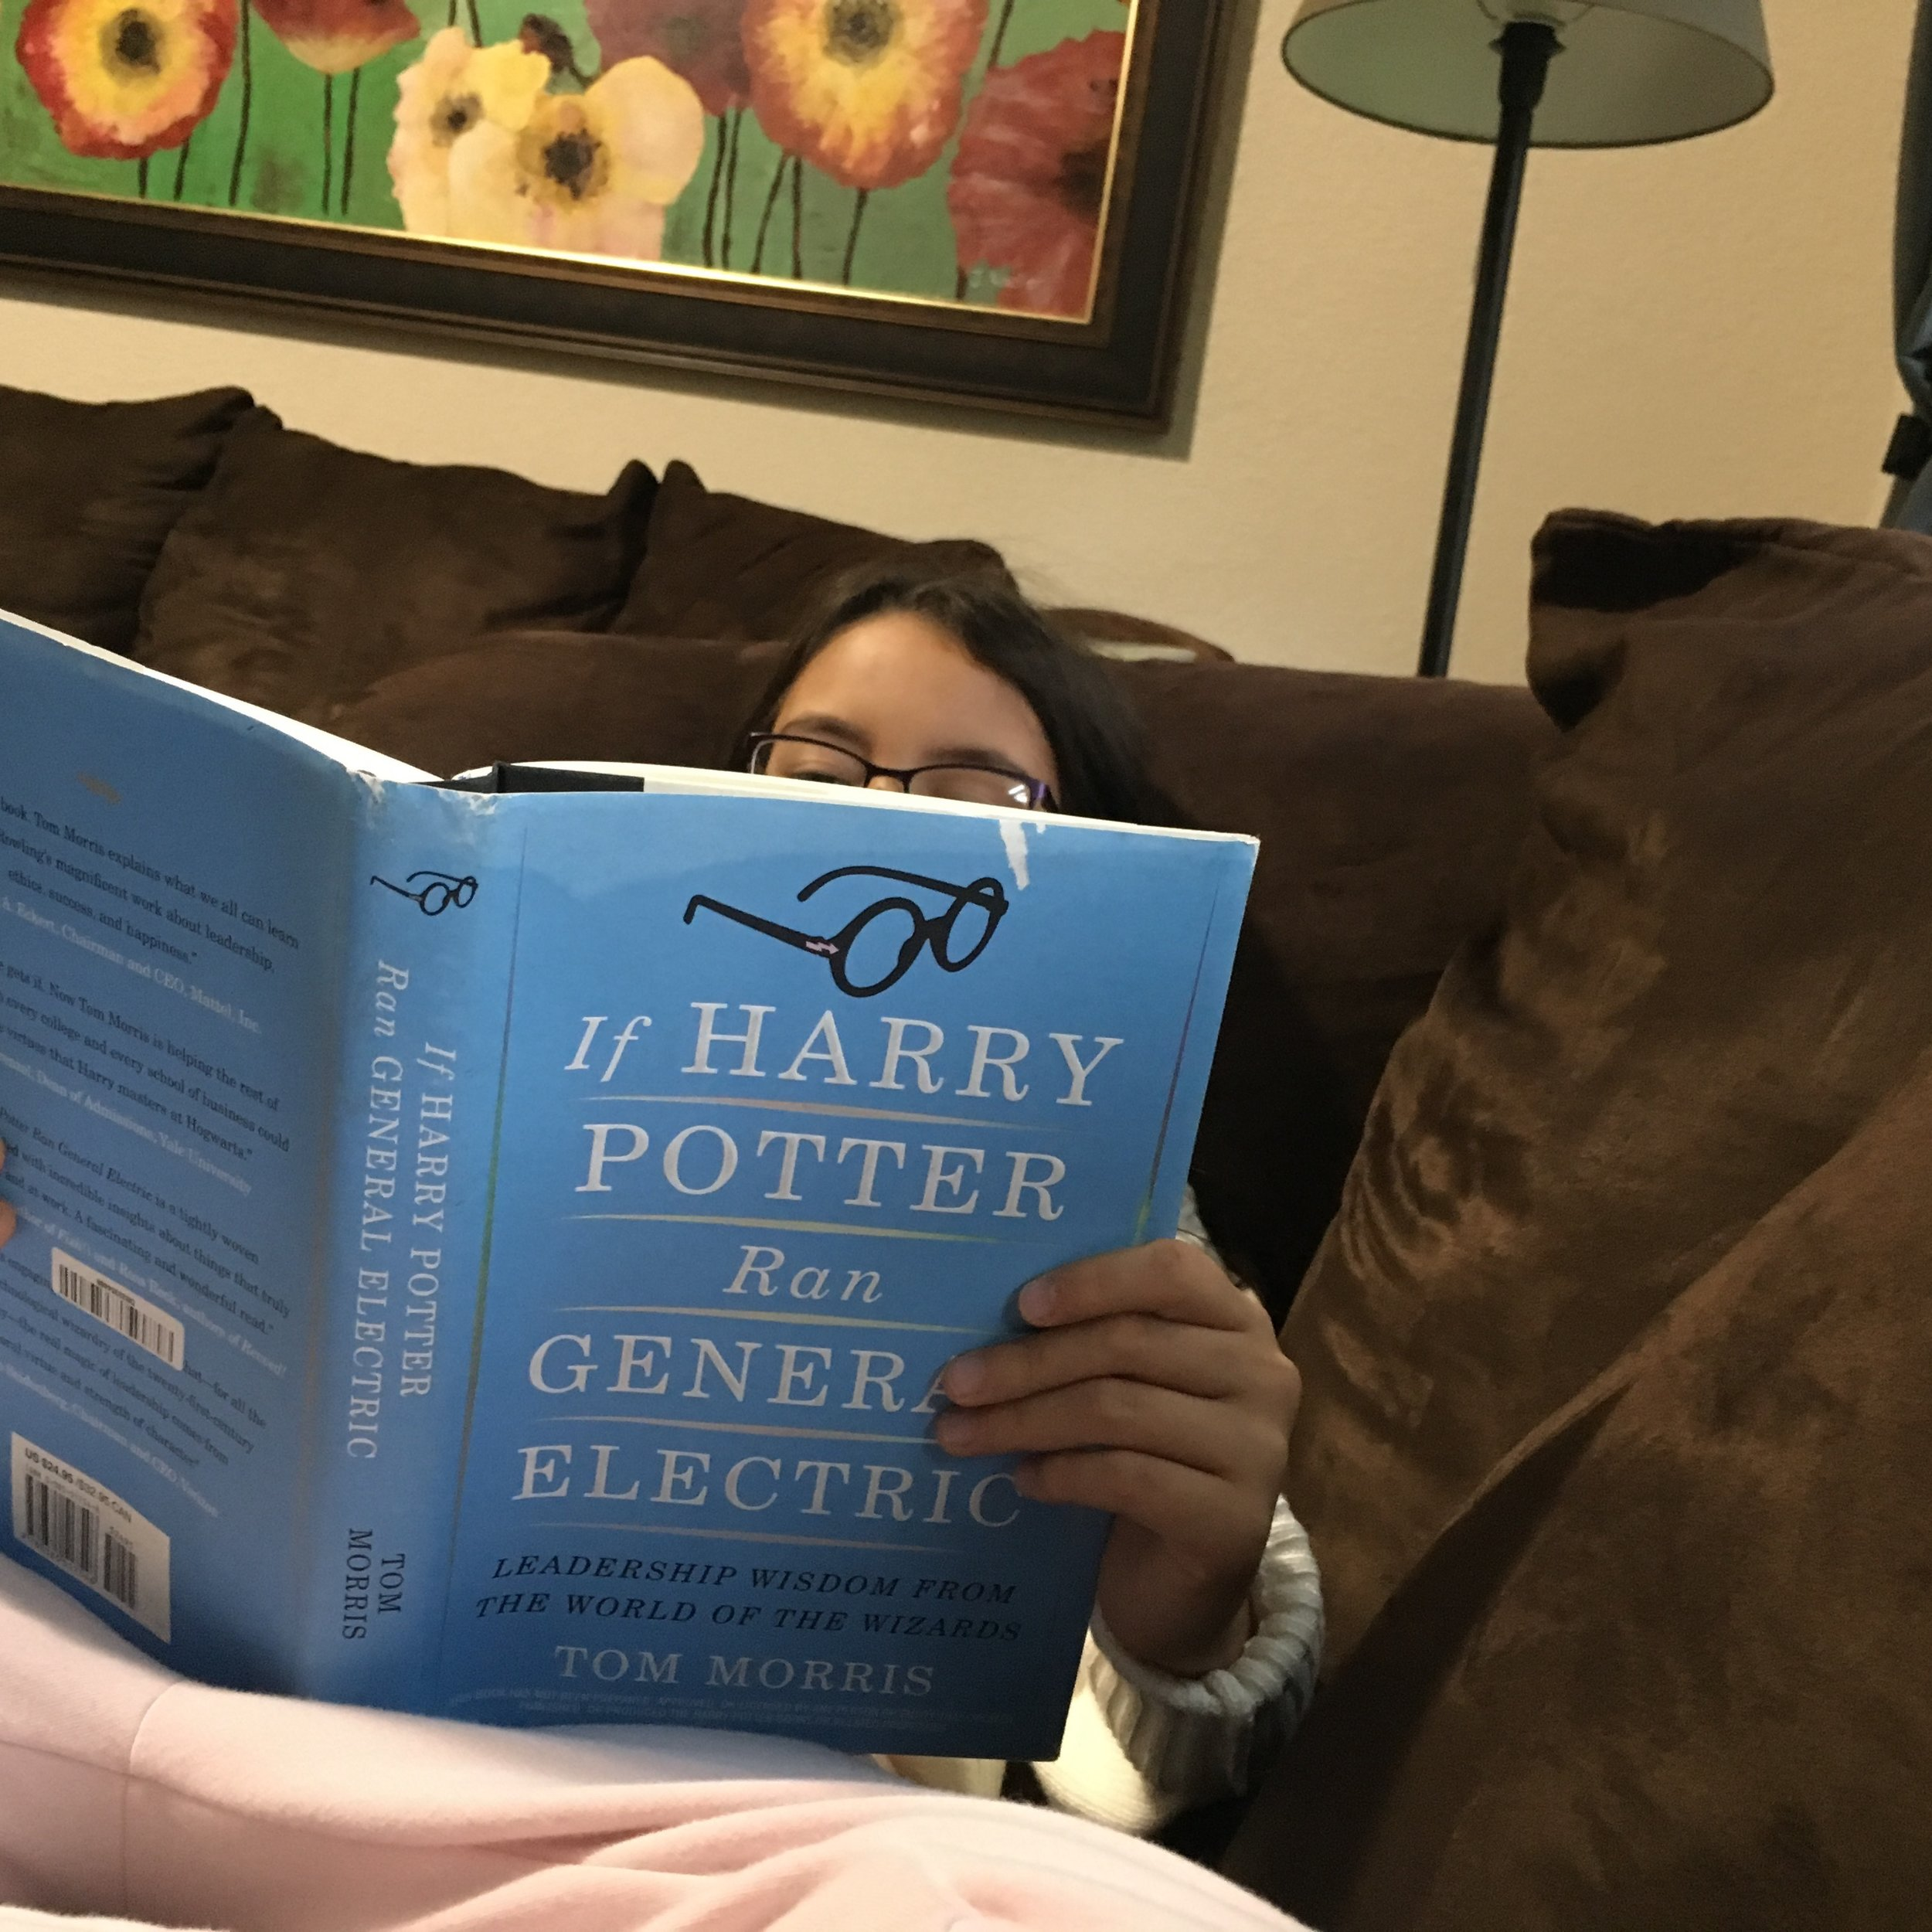 My Favorite Photo of the Month: A young lady named Jubilee gets off to a head start in life by diving into some philosophy! I do appreciate reader photos like this! And I like that white mark at the top showing wear and use! Thanks!